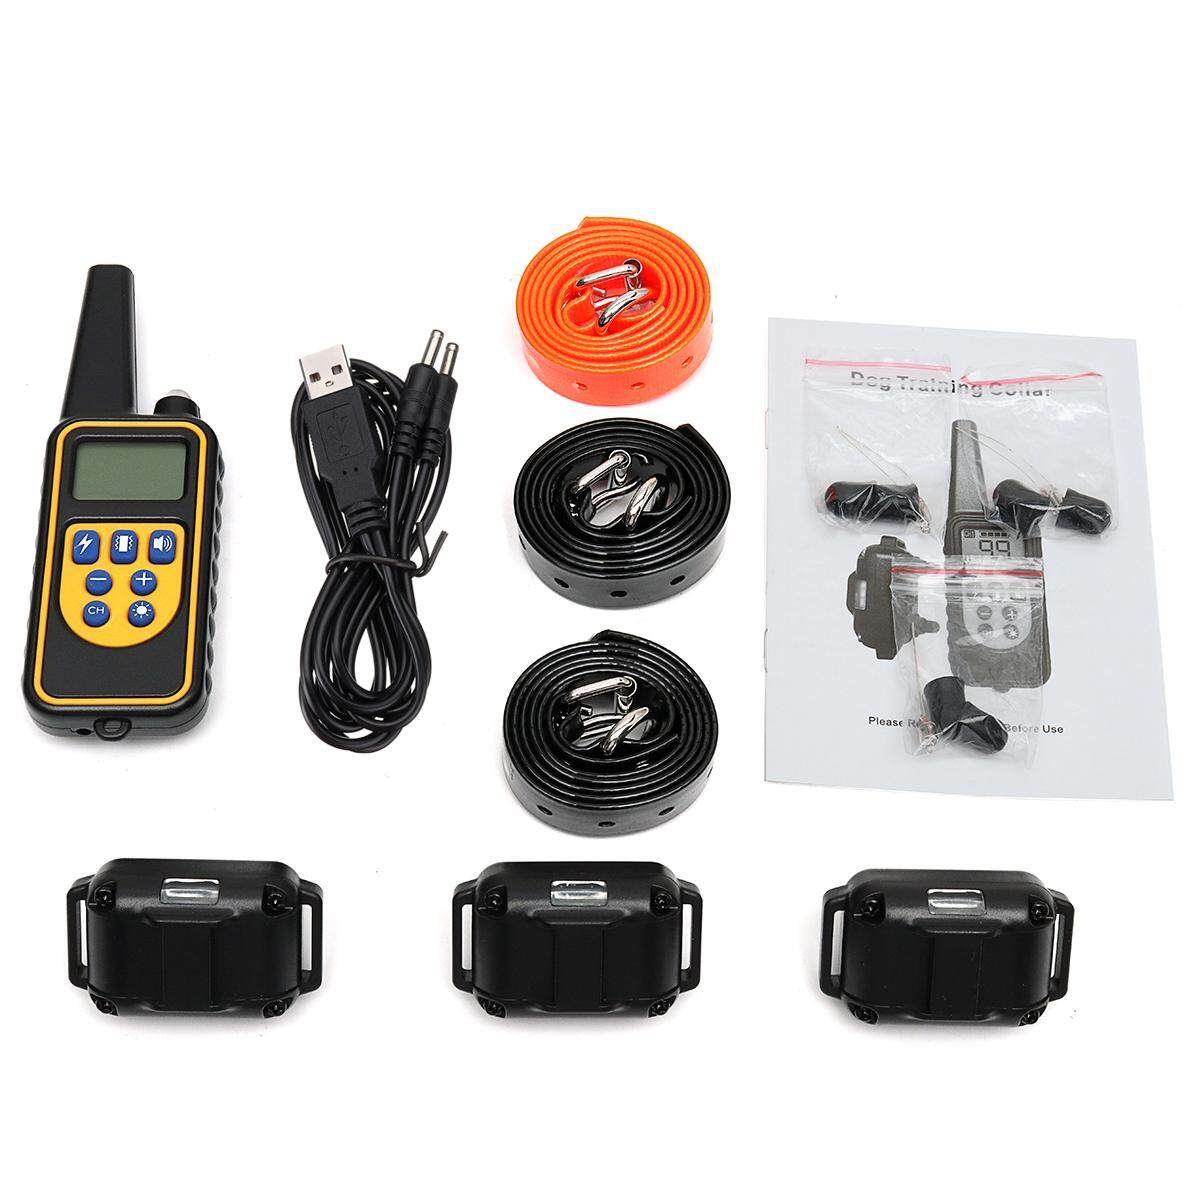 Rechargeable Electric Remote Dog Training Shock Collar Waterproof For 3 Dogs By Freebang.